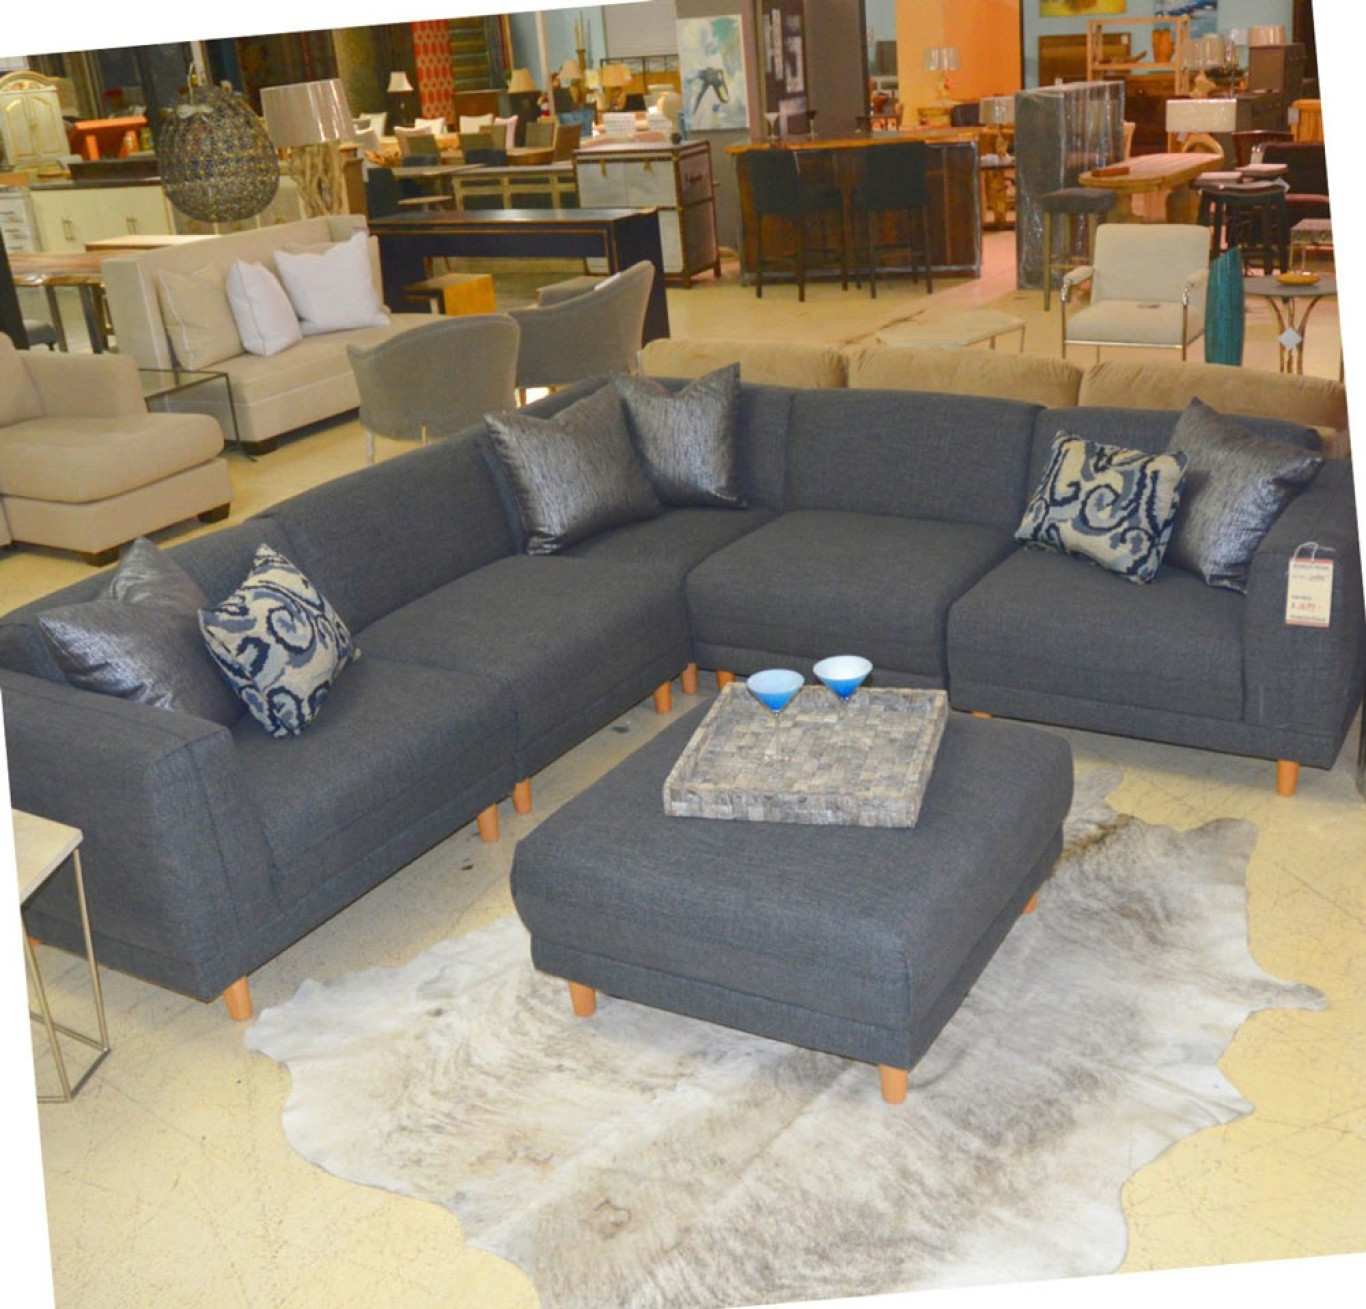 Homemakers Furniture Des Moines Iowa Throughout Des Moines Ia Sectional Sofas (Image 4 of 10)